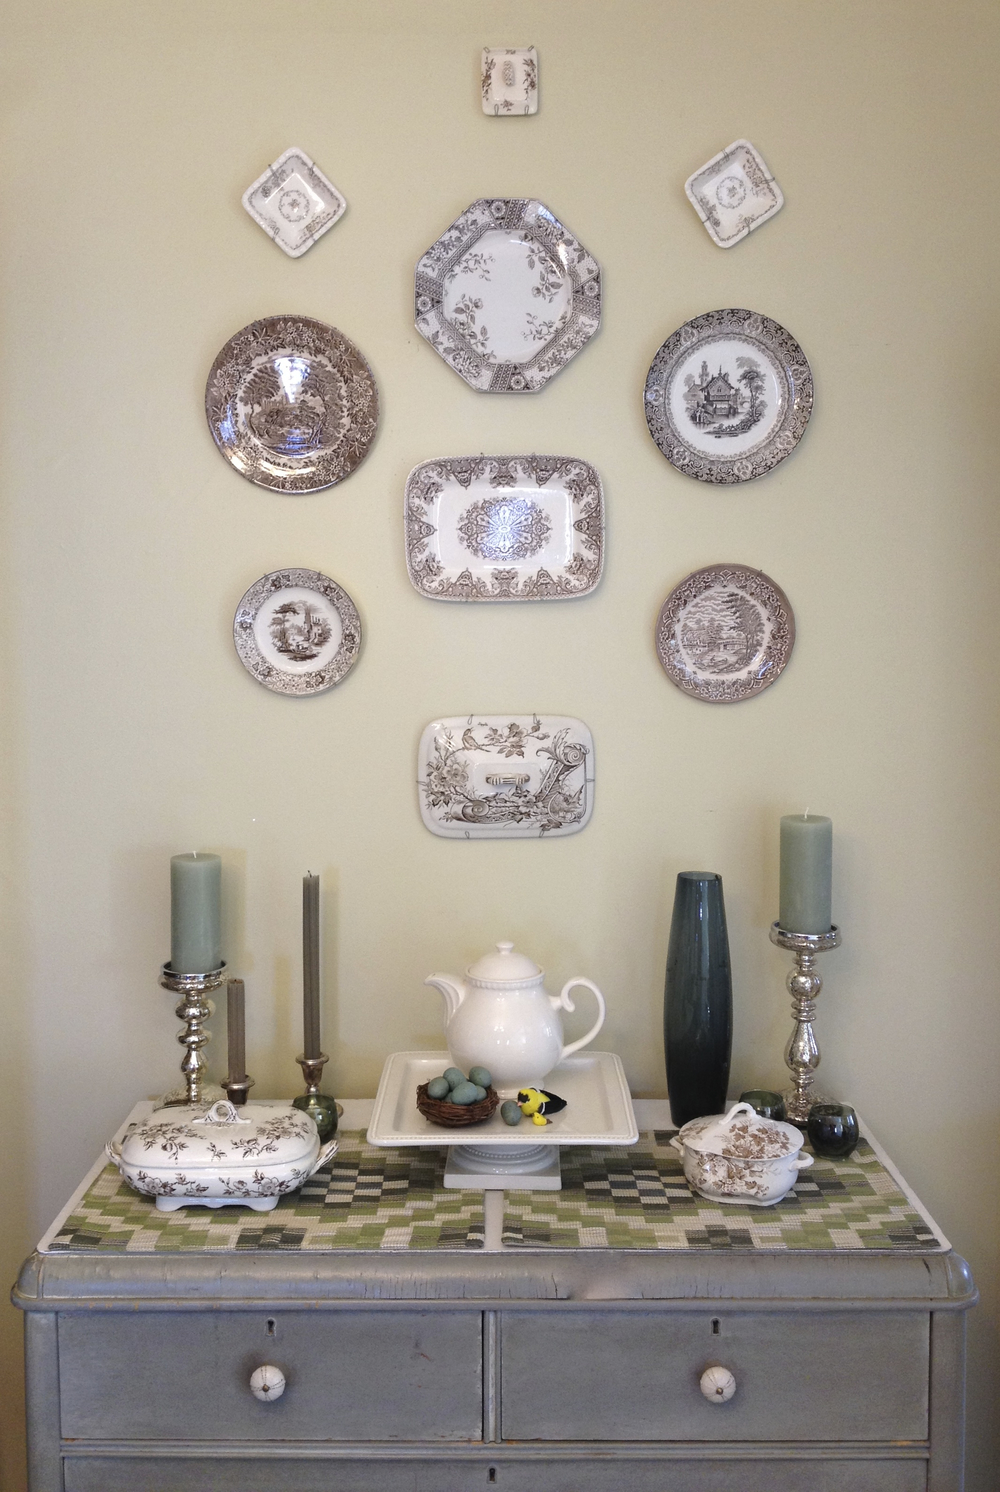 All but three items in this vignette the client had in storage!  We pulled out her transfer ware collection and put it up on the walls for her to enjoy every day!